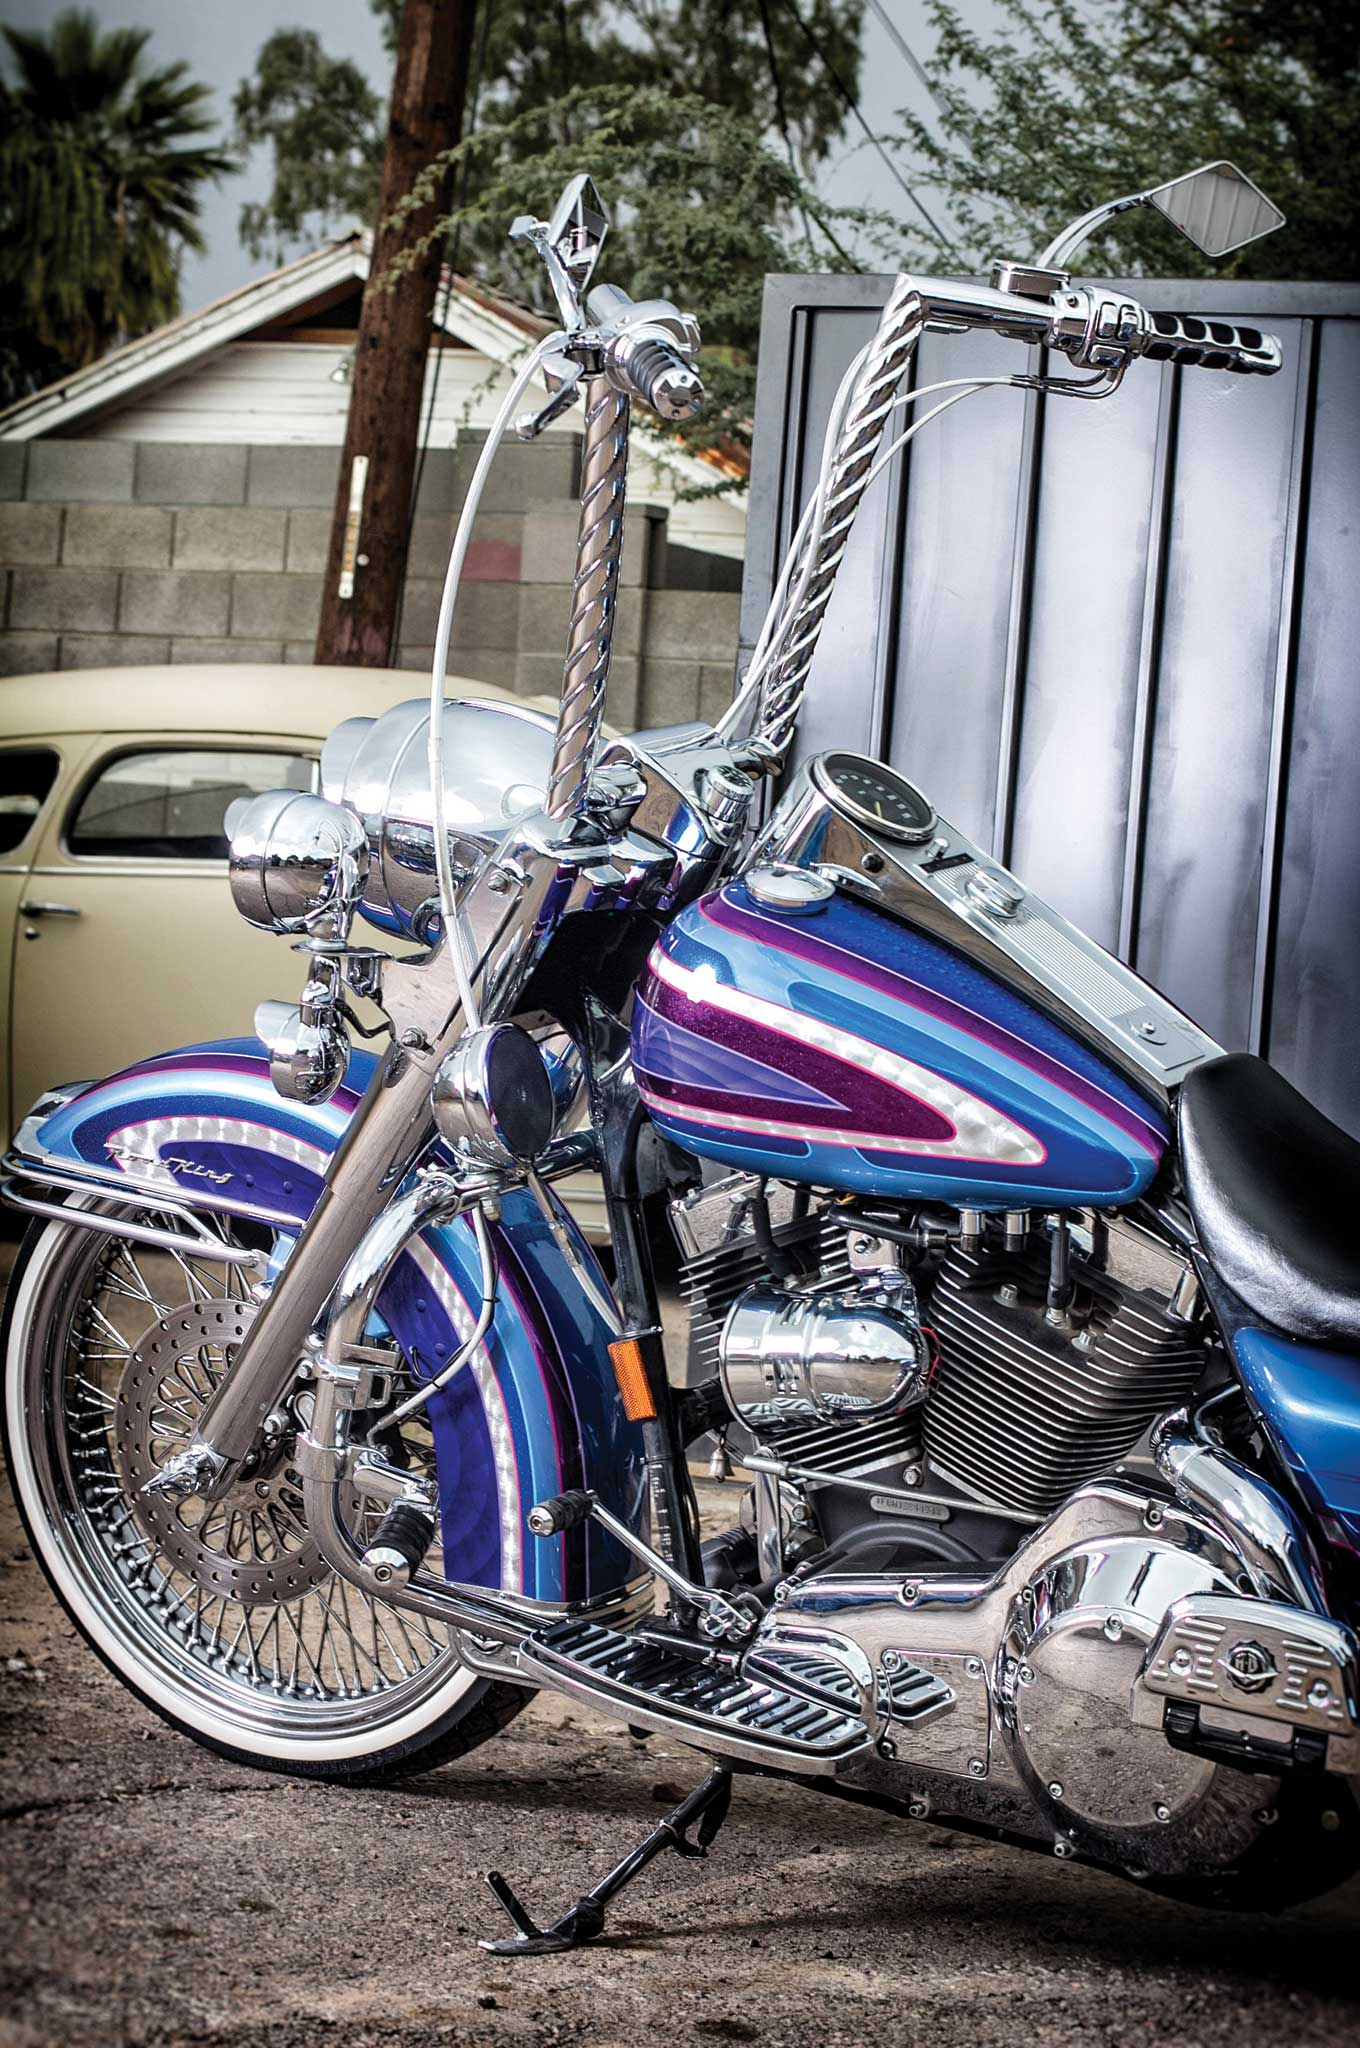 Pl also  furthermore Harley Davidson Road King Hd Big Bore together with Dscf moreover Craigslist. on 1964 chevy impala body